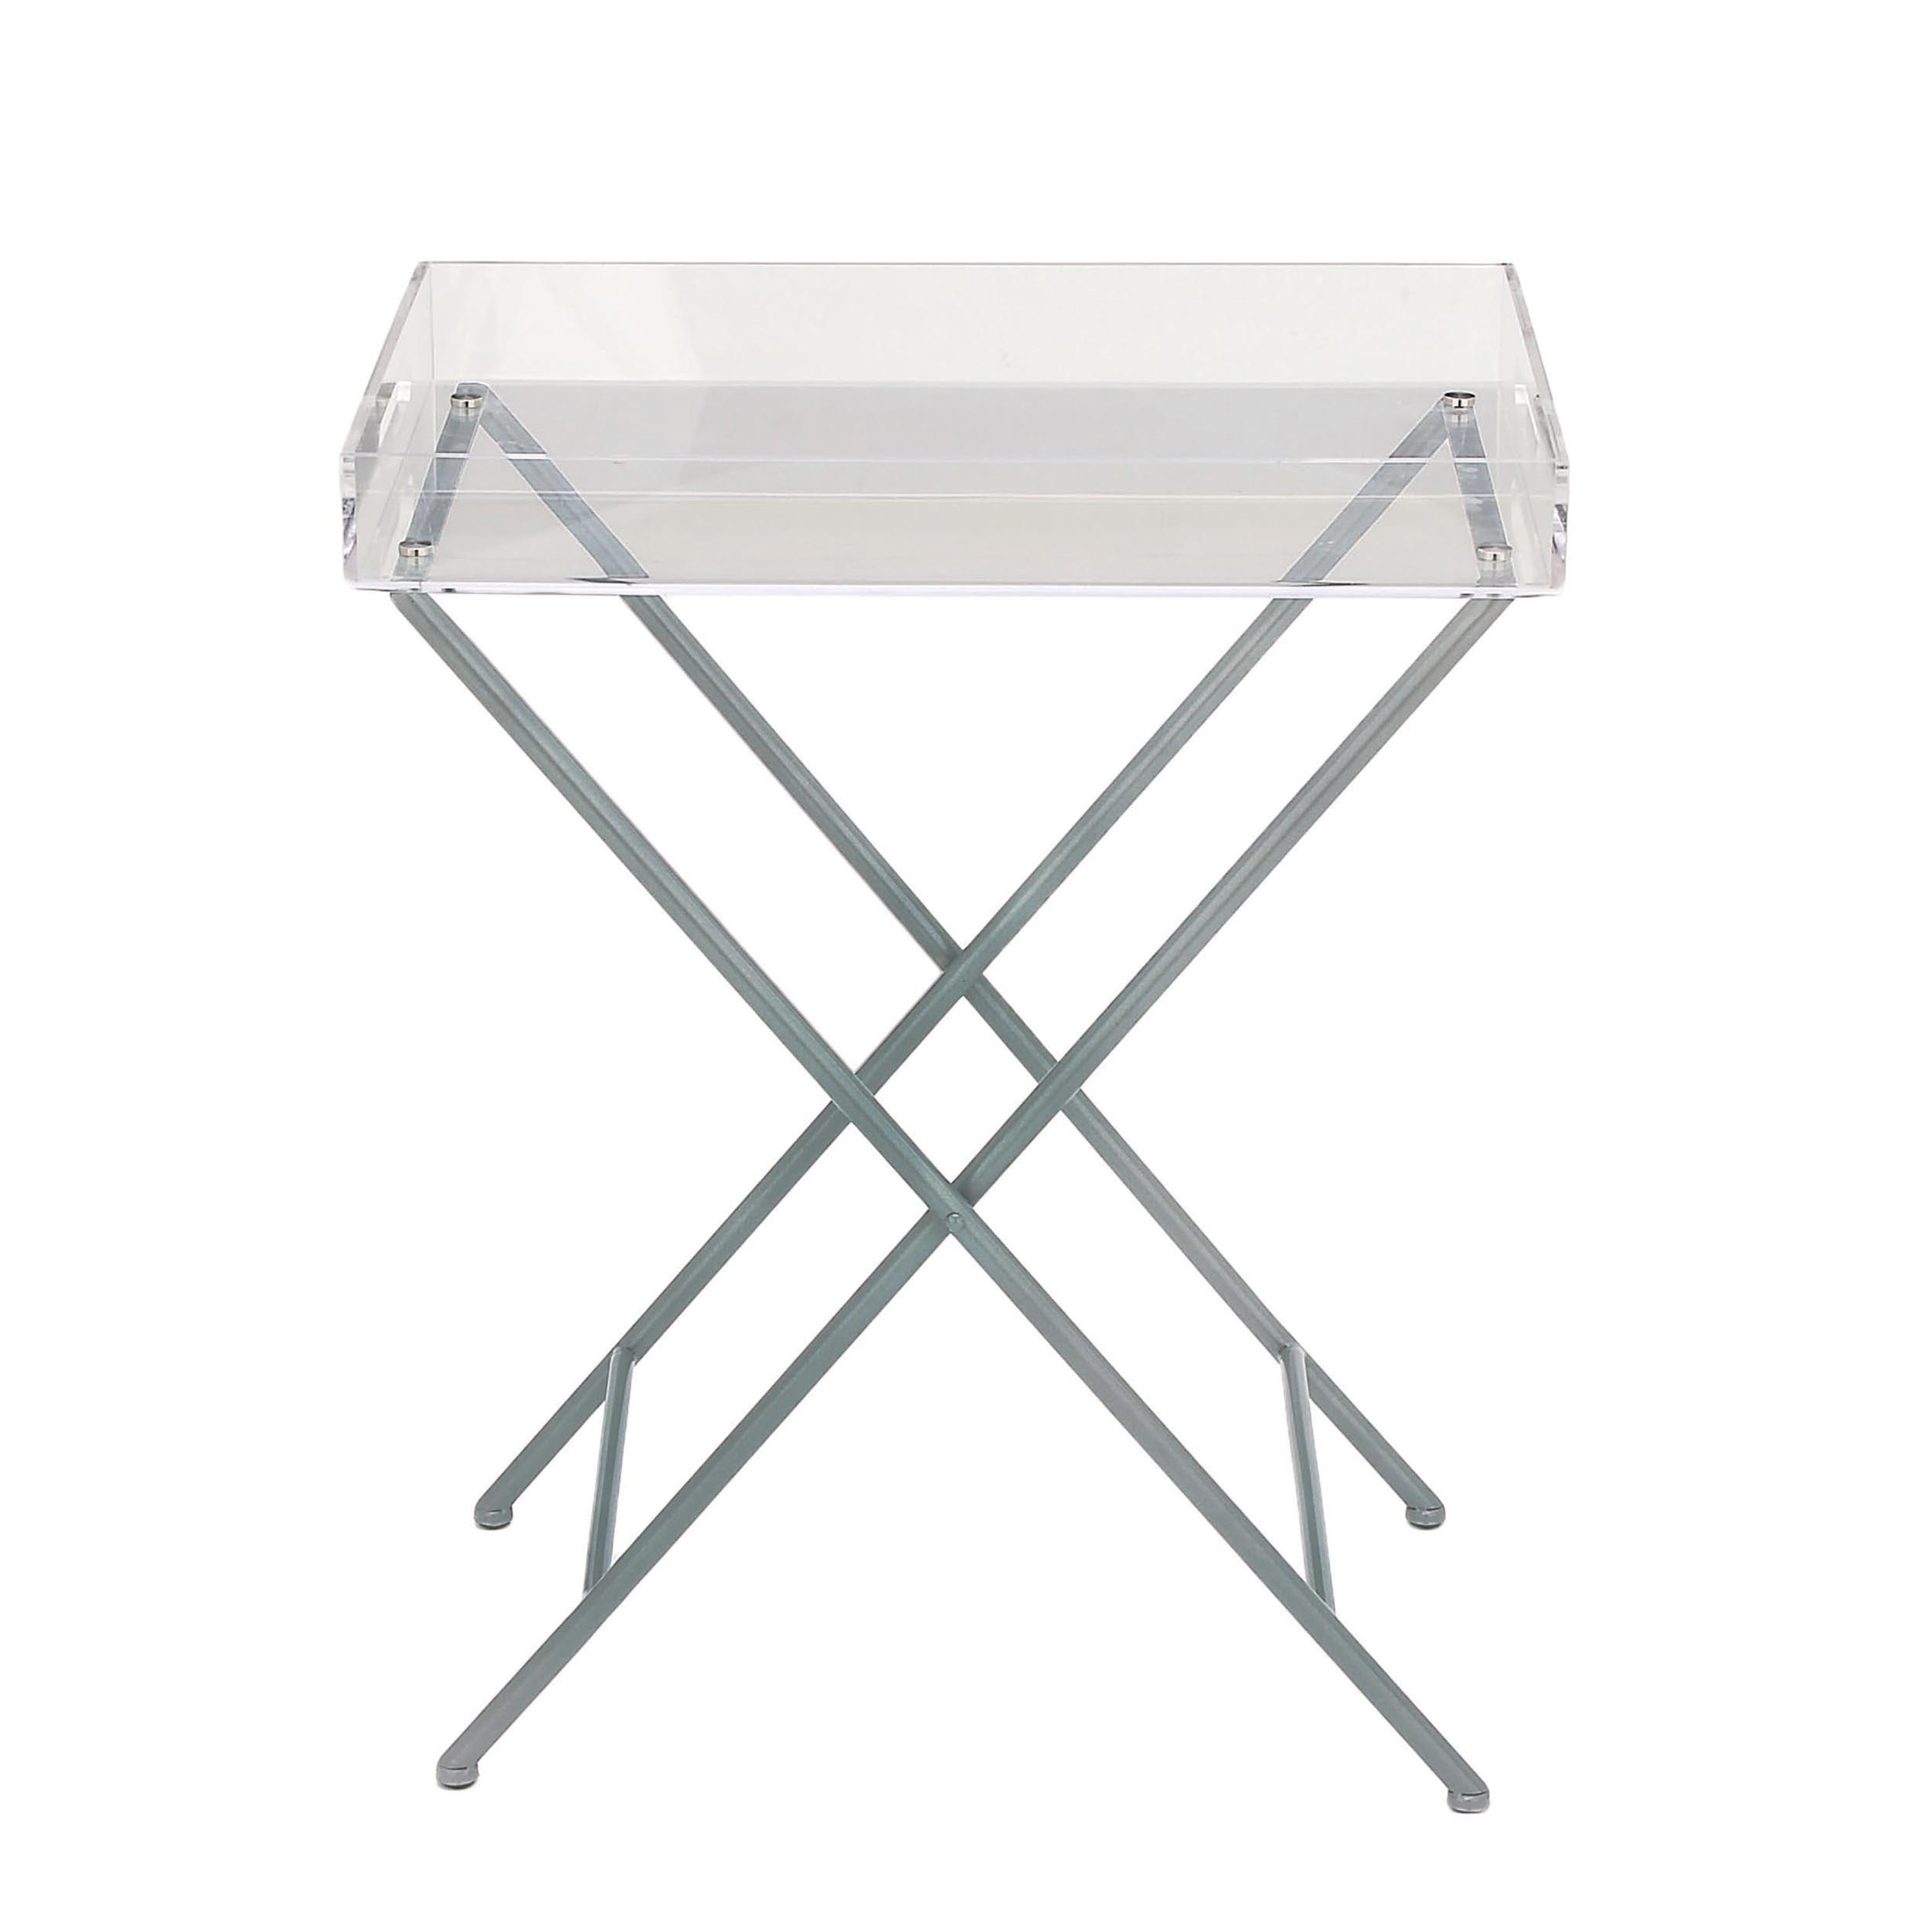 urban designs clear acrylic tray top accent table free modern shipping today white round end target kids rugs side metal and wood small front porch sideboard grey bedroom chair